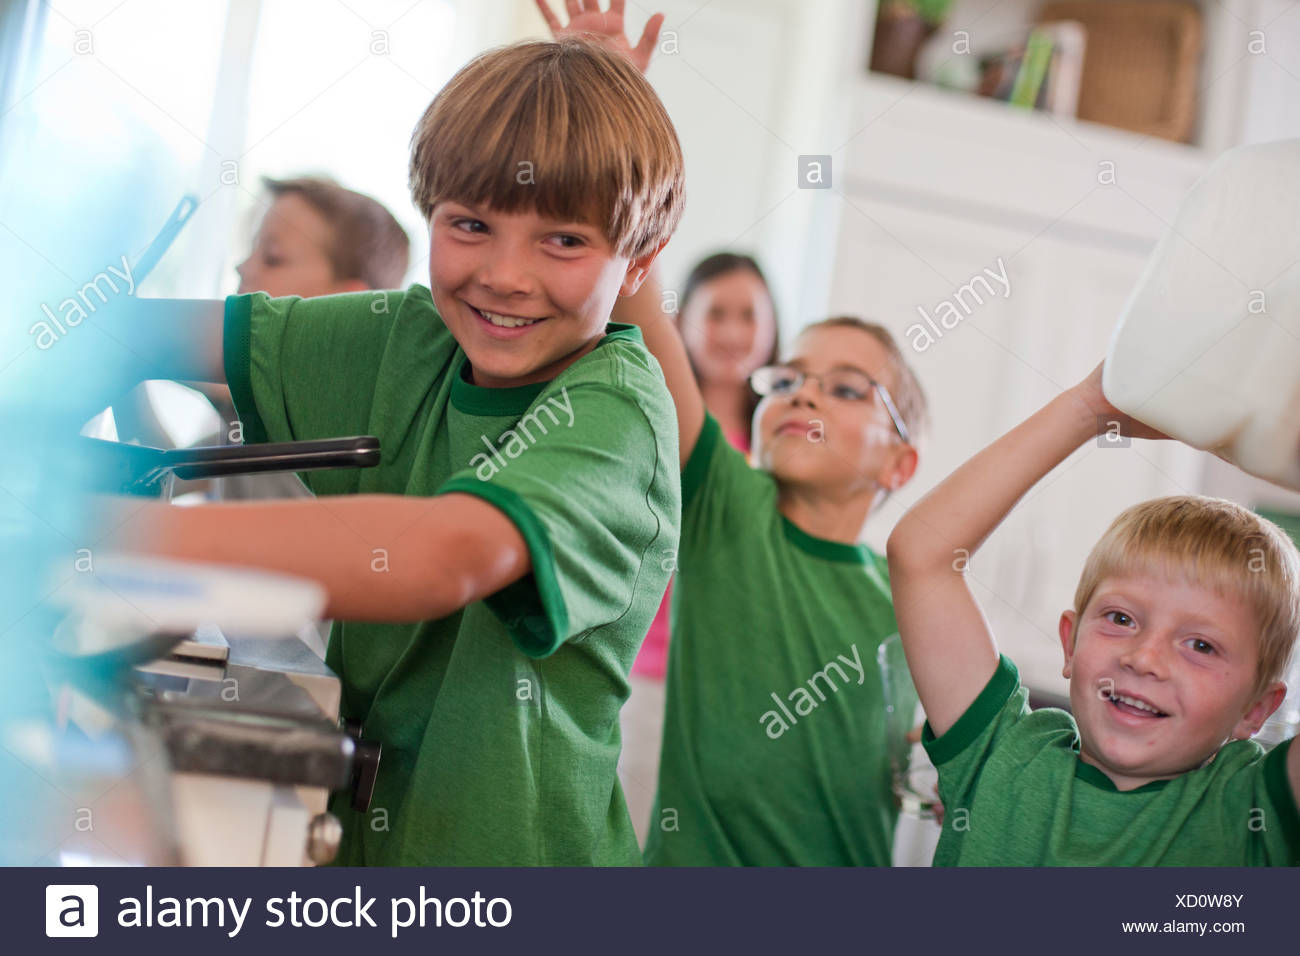 Group of children in kitchen - Stock Image